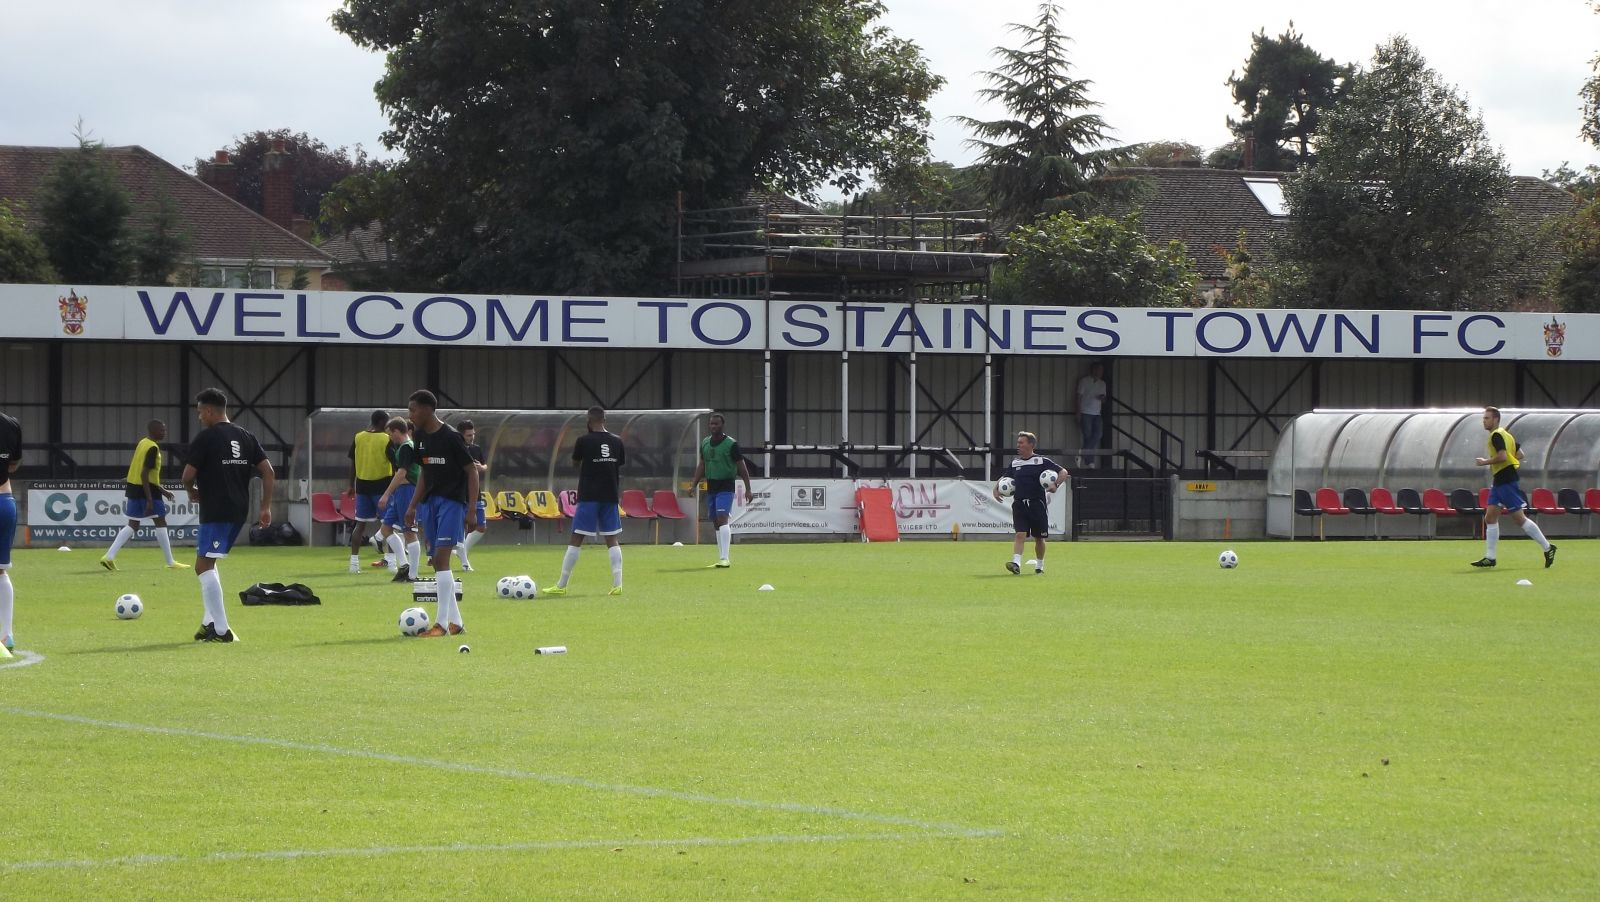 Staines Town v Leverstock Green